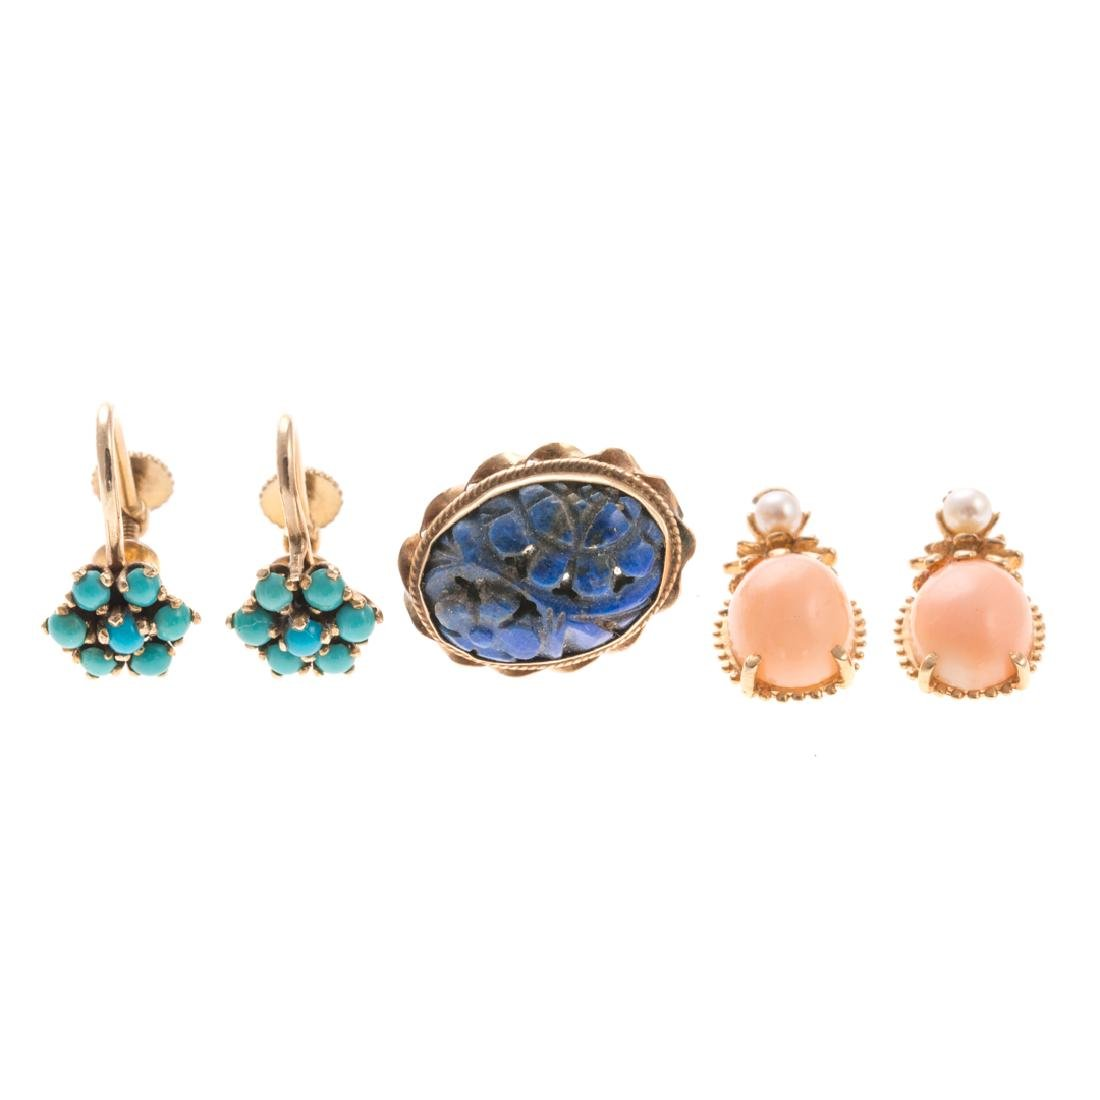 A Collection of Lady's Gold Earrings & Pendants